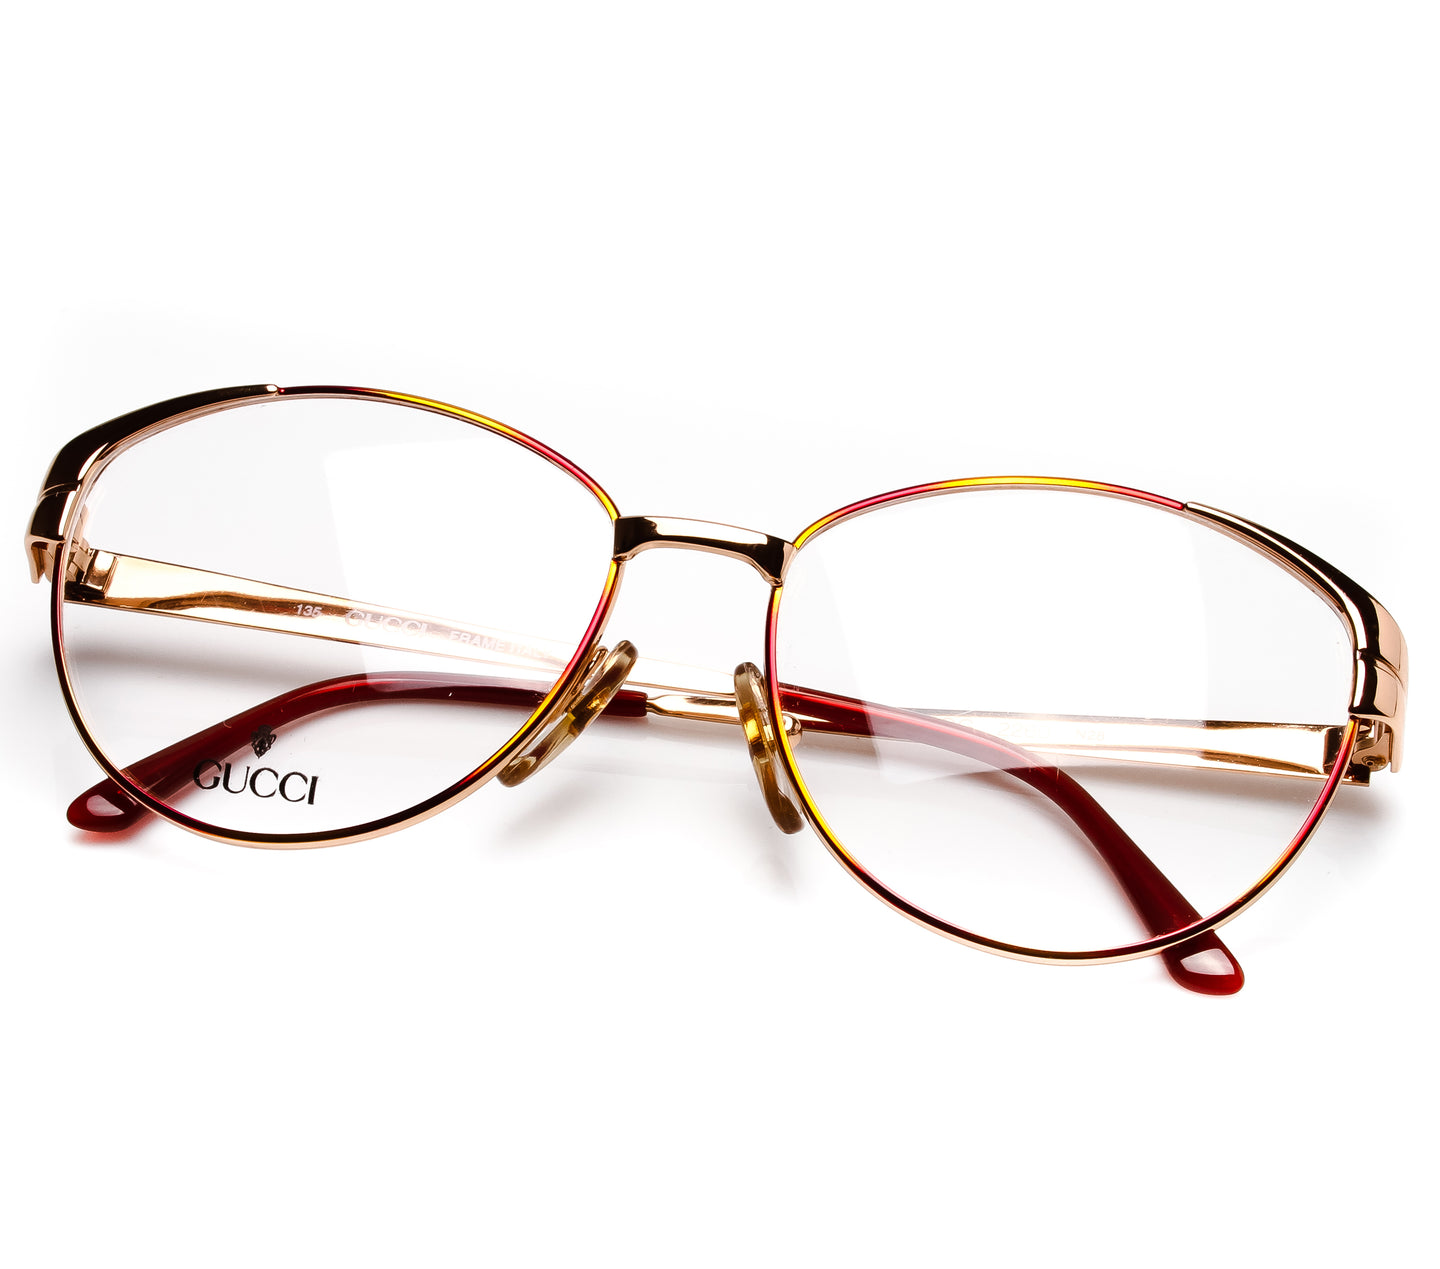 Gucci 2260 N28 Thumbnail, Gucci , glasses frames, eyeglasses online, eyeglass frames, mens glasses, womens glasses, buy glasses online, designer eyeglasses, vintage sunglasses, retro sunglasses, vintage glasses, sunglass, eyeglass, glasses, lens, vintage frames company, vf